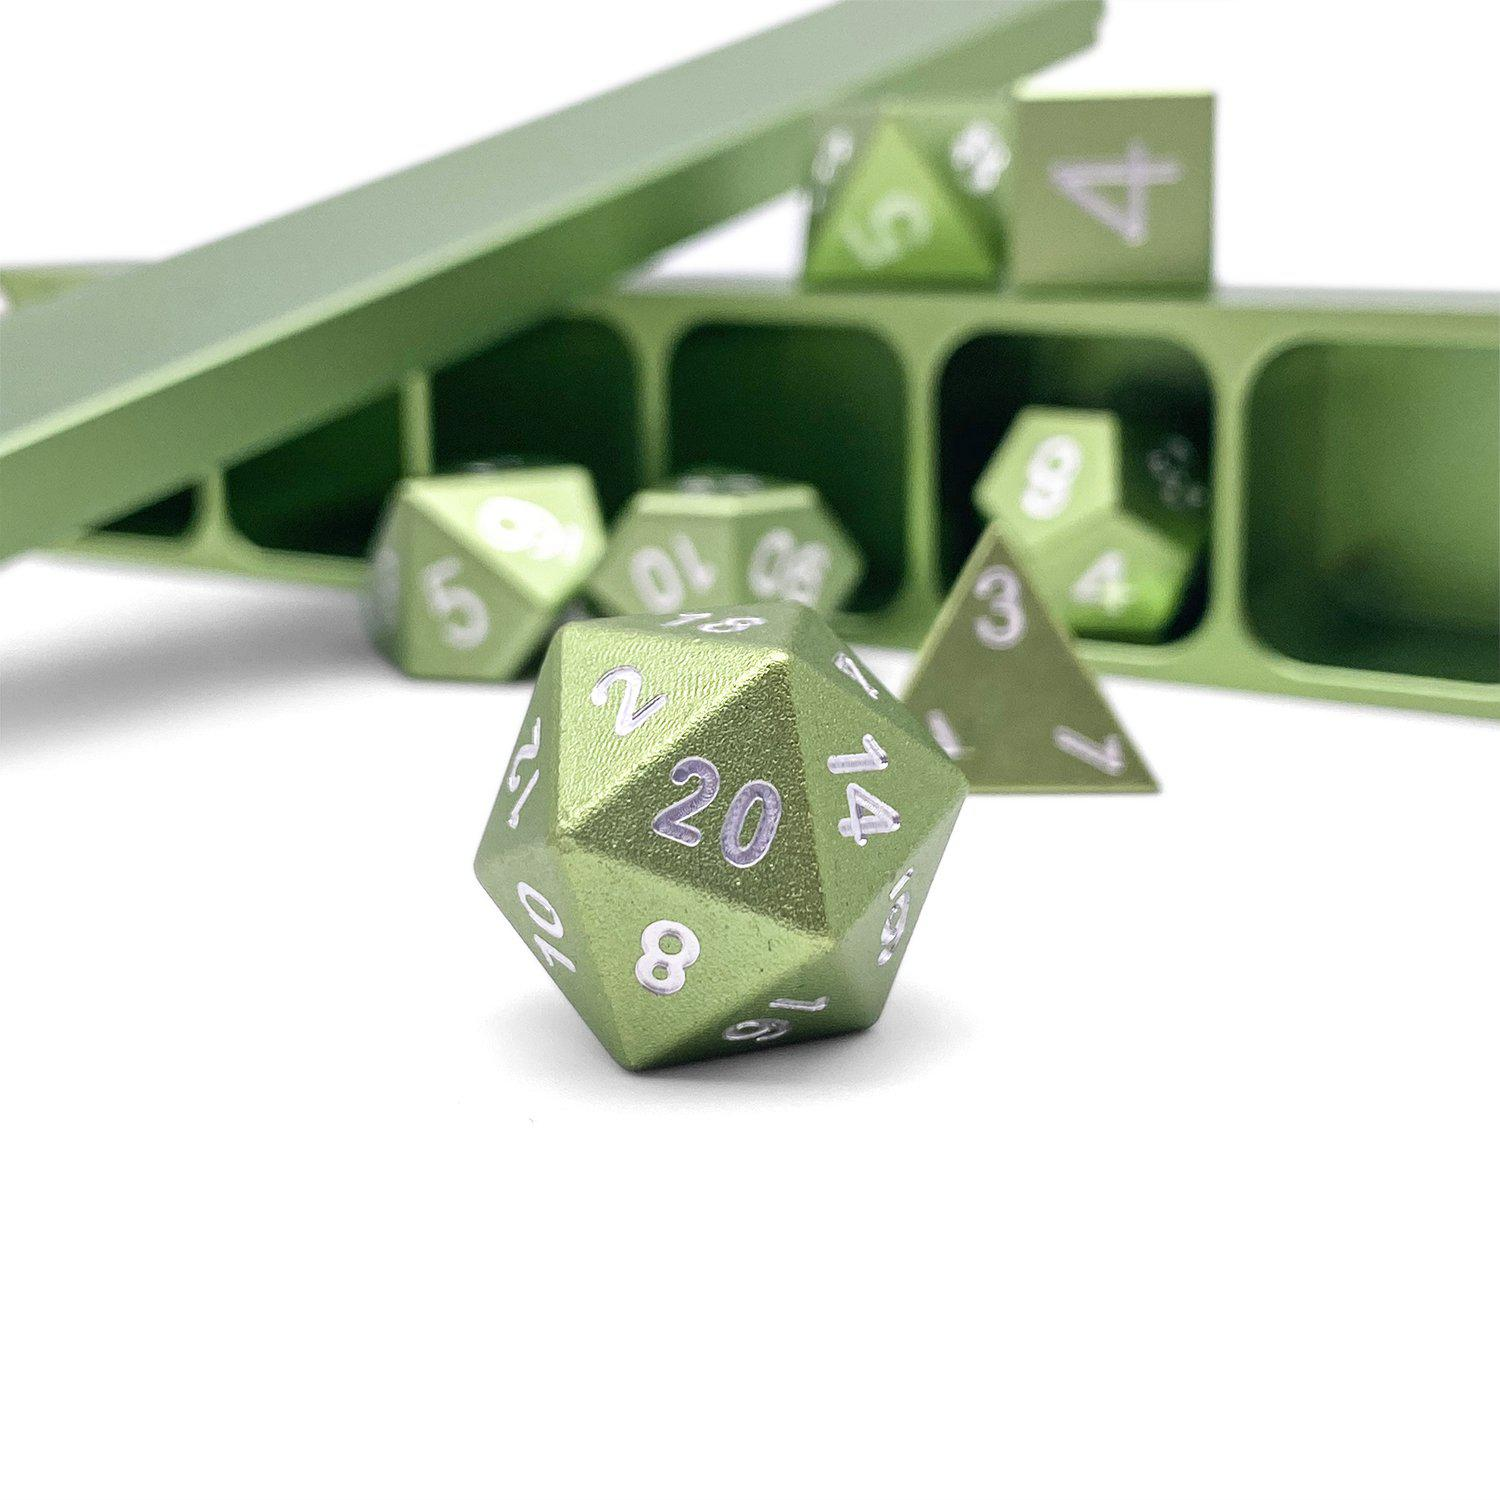 Ranger Green - Precision CNC Aluminum Dice Set with Dice Vault